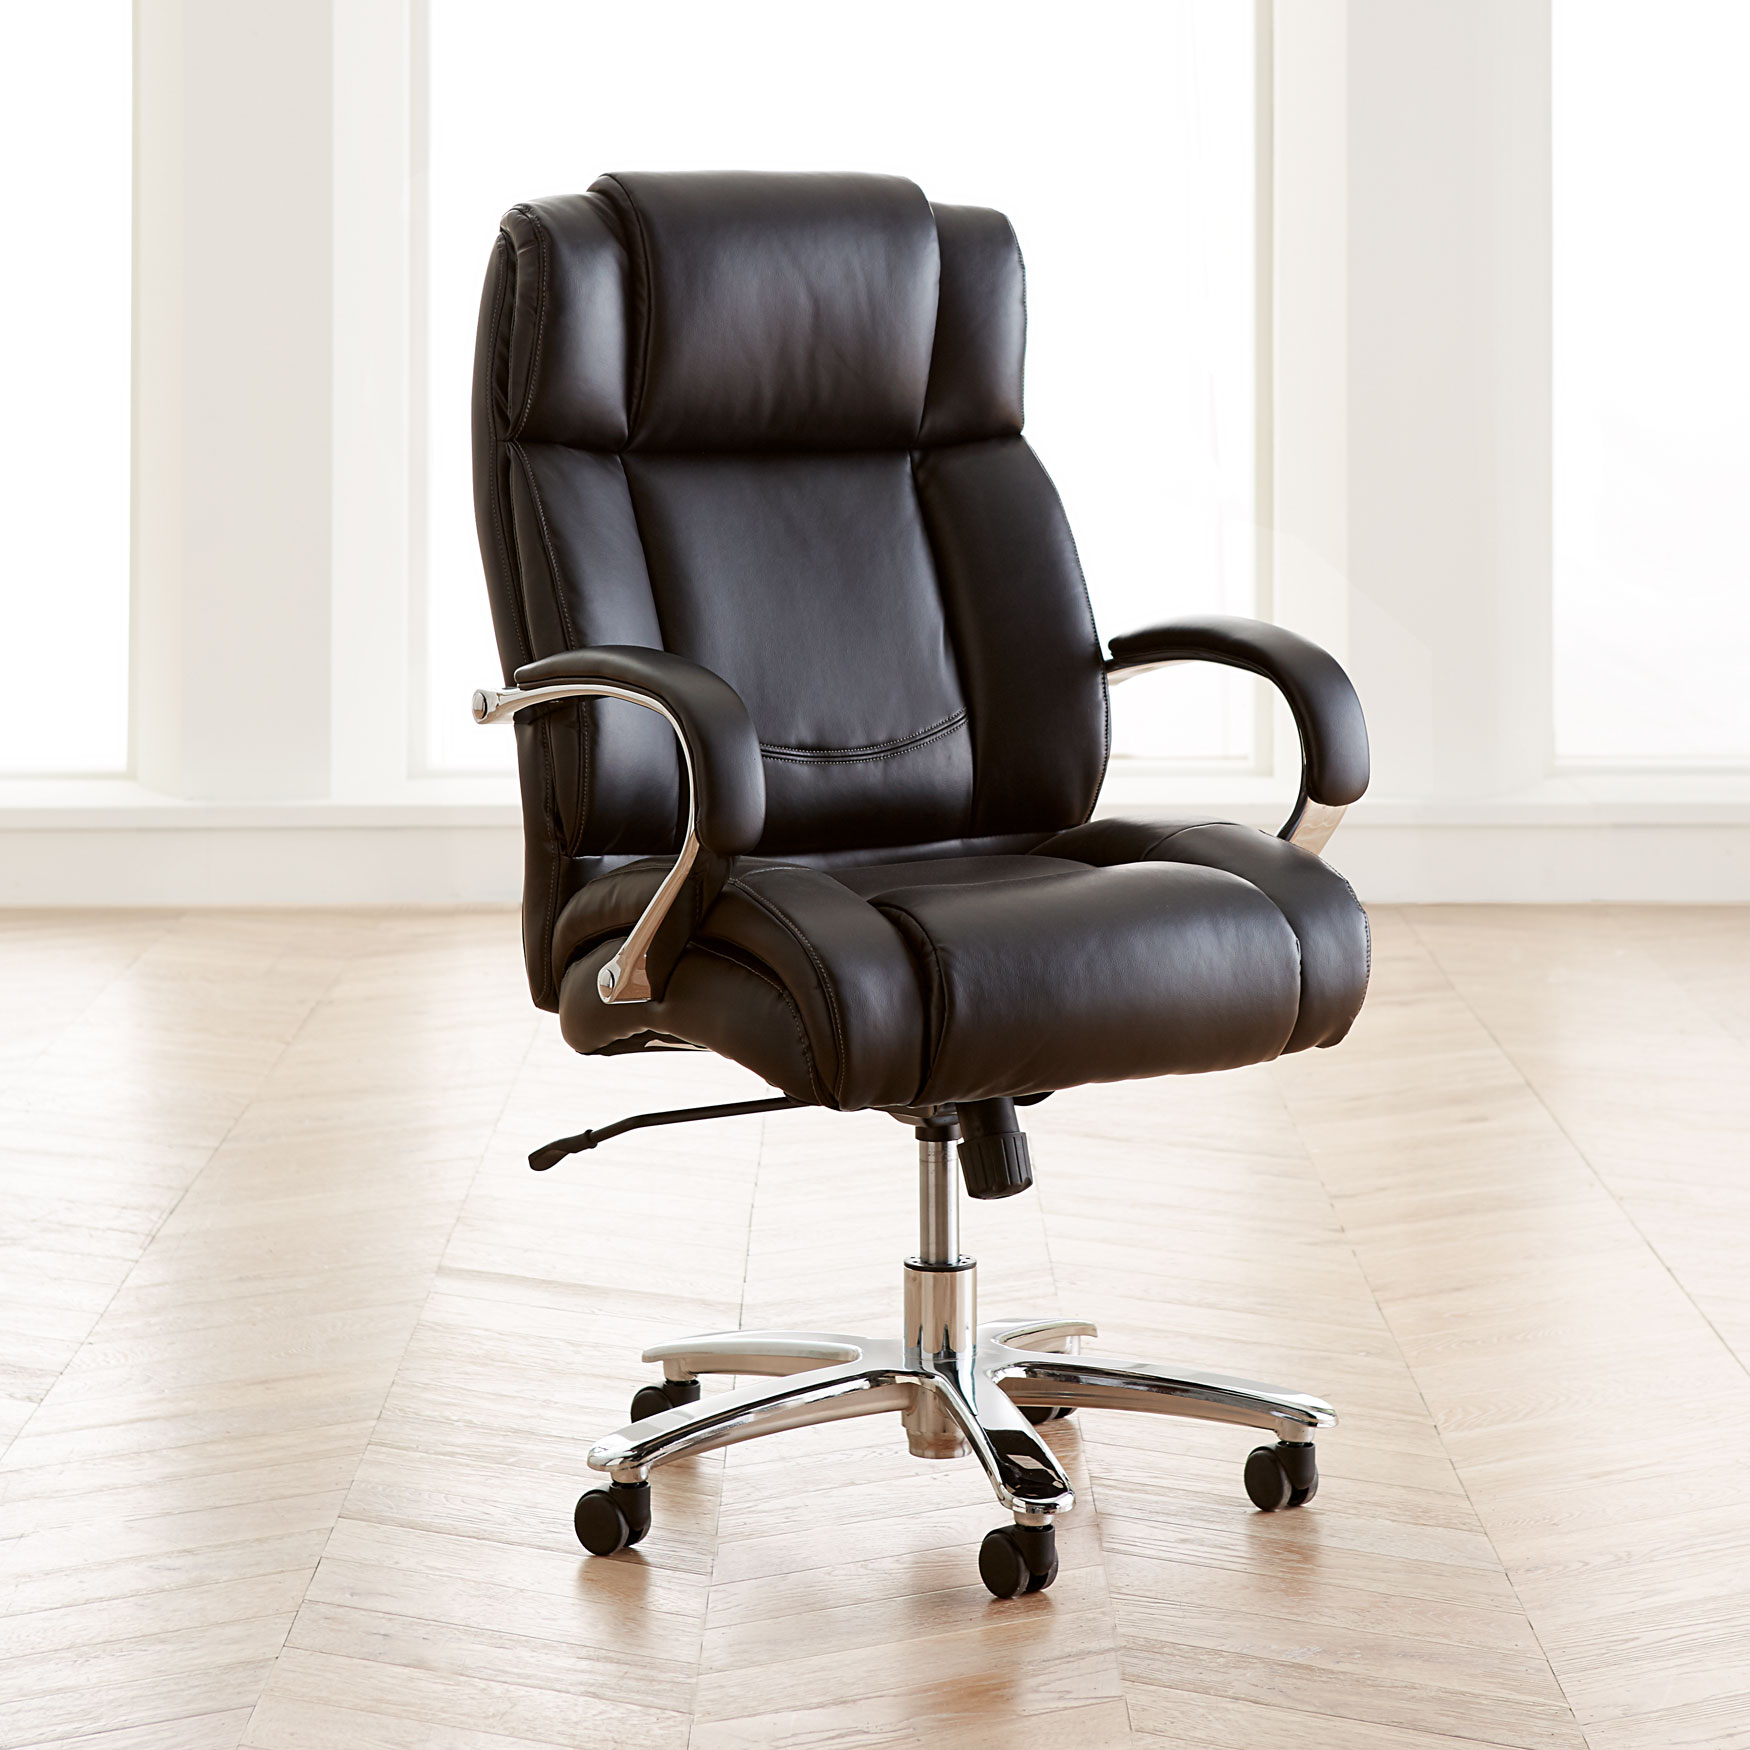 Extra Wide Office Chairs Extra Wide Chrome Finish Office Chair Plus Size Chairs